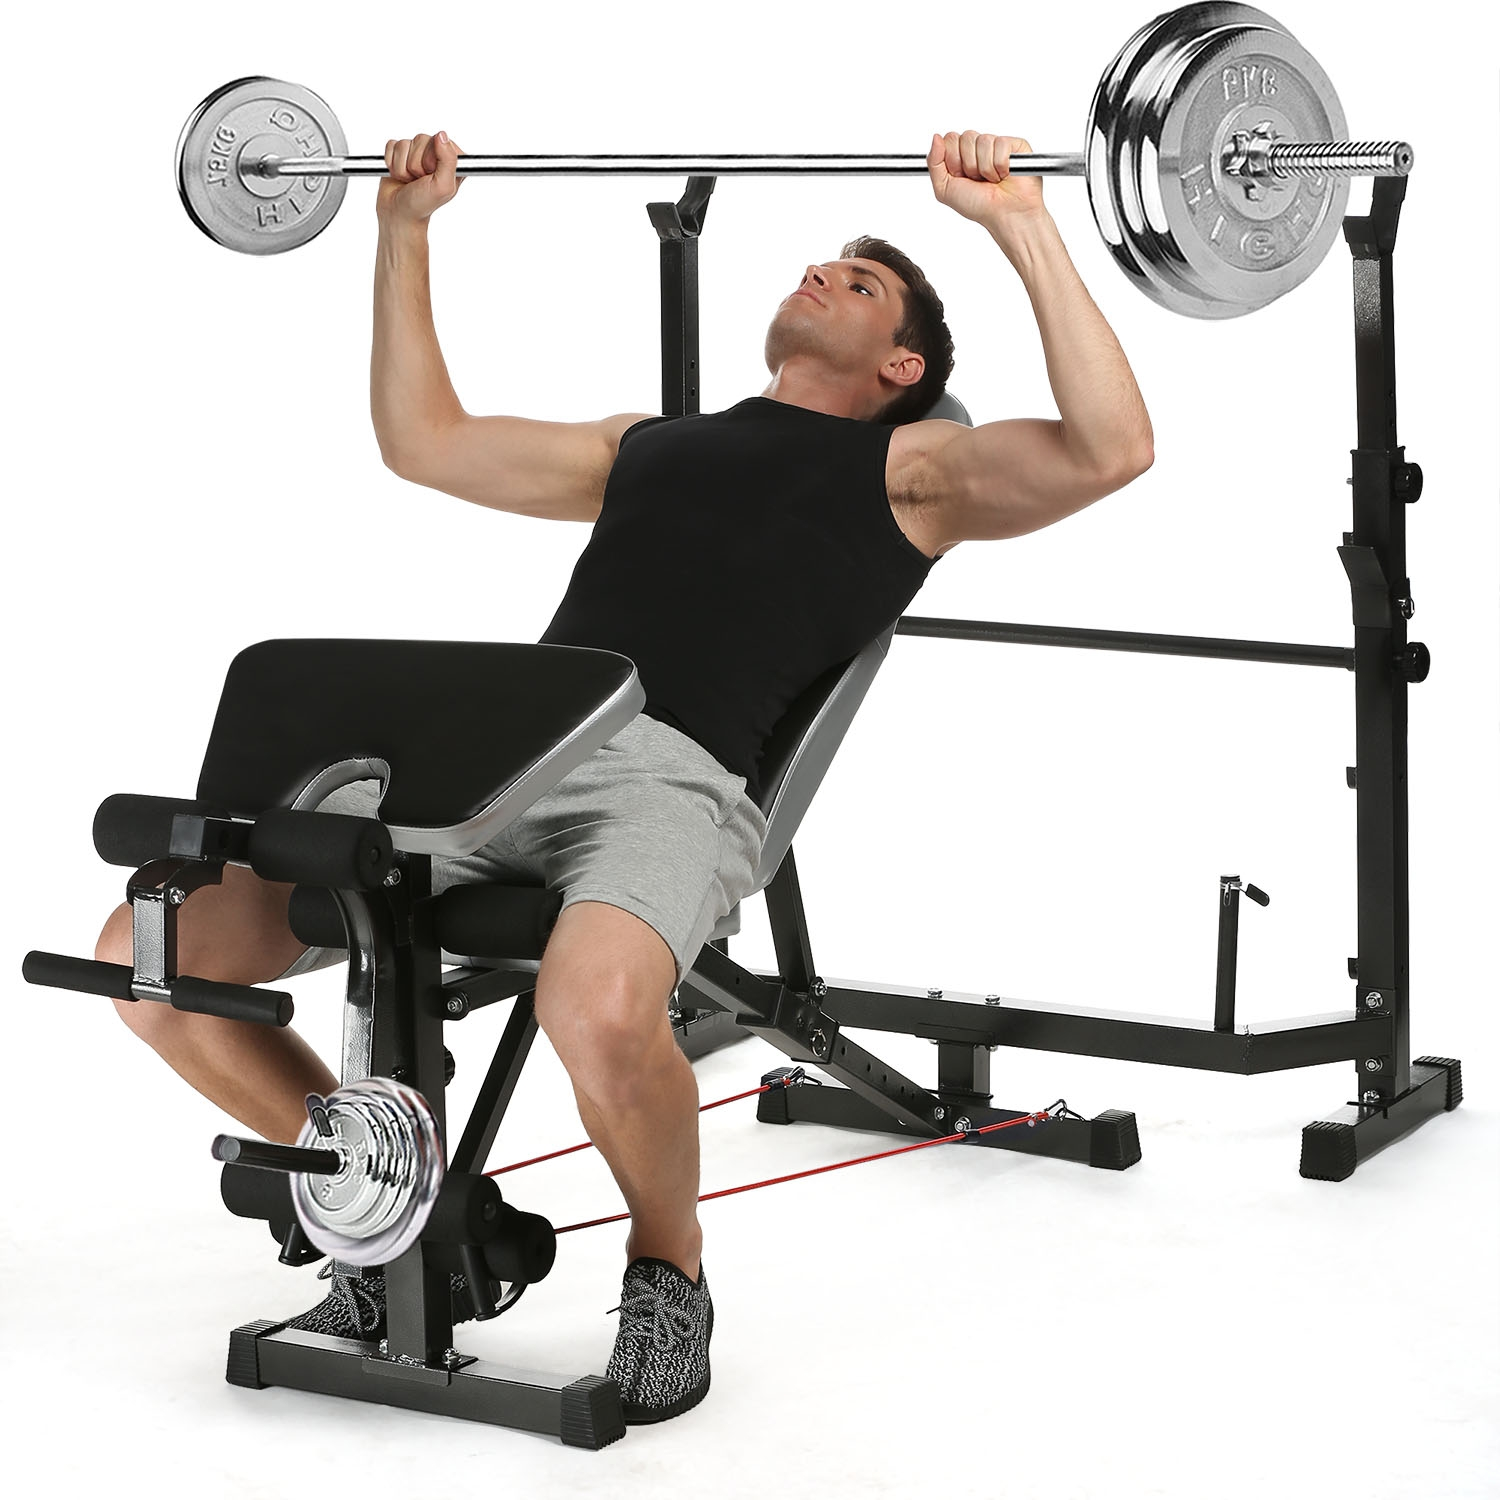 New Olympic Weight Bench Set Press Fitness Home Gym Workout Strength Training by